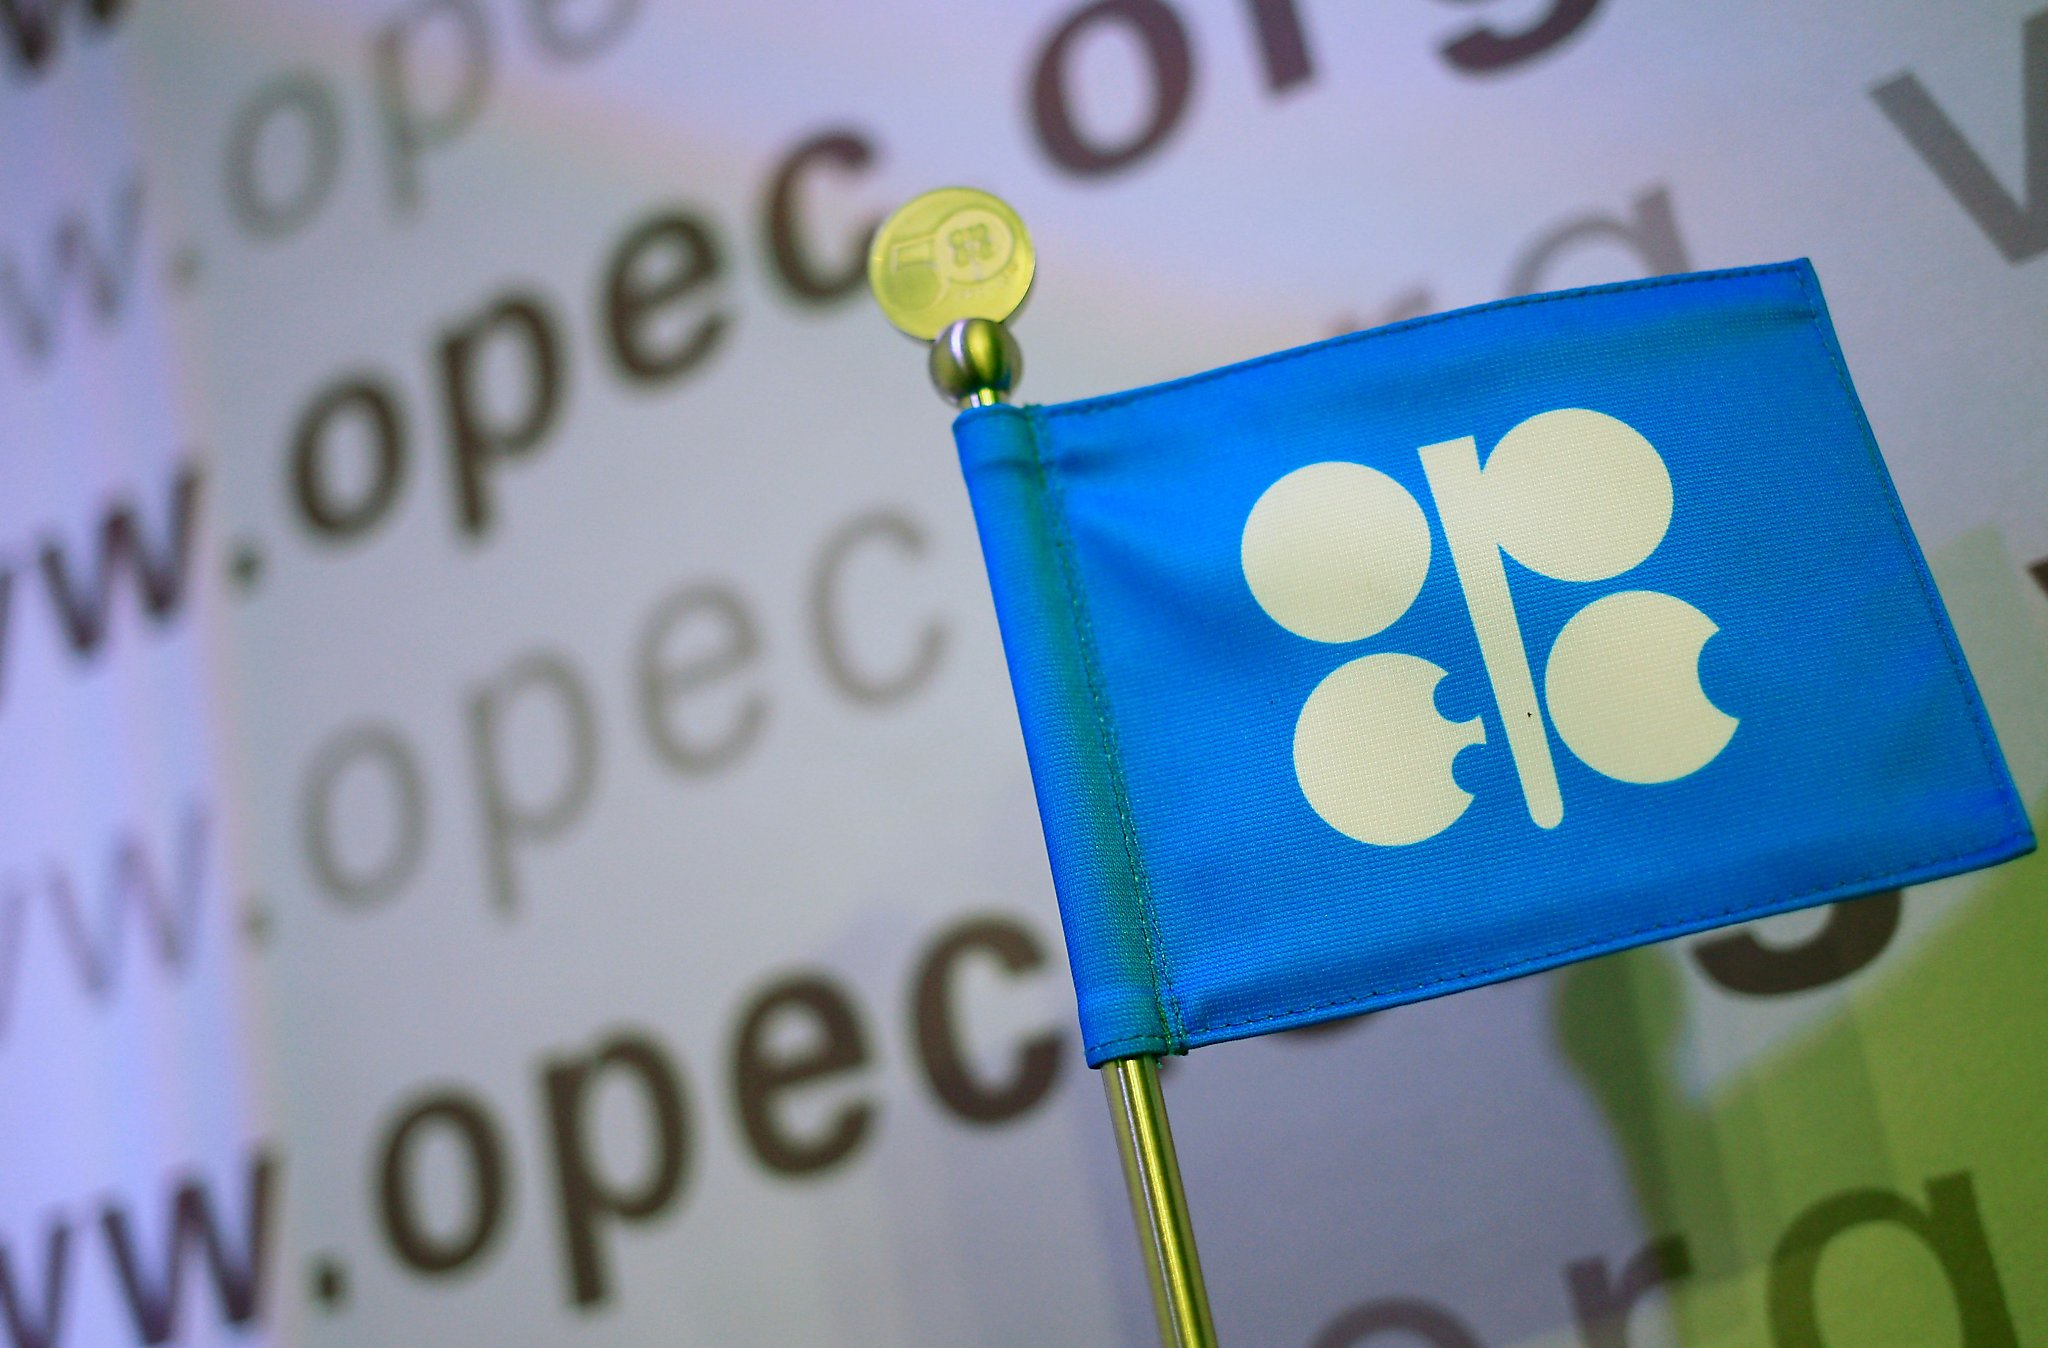 Biggest OPEC+ producers aren't pushing for deeper cuts